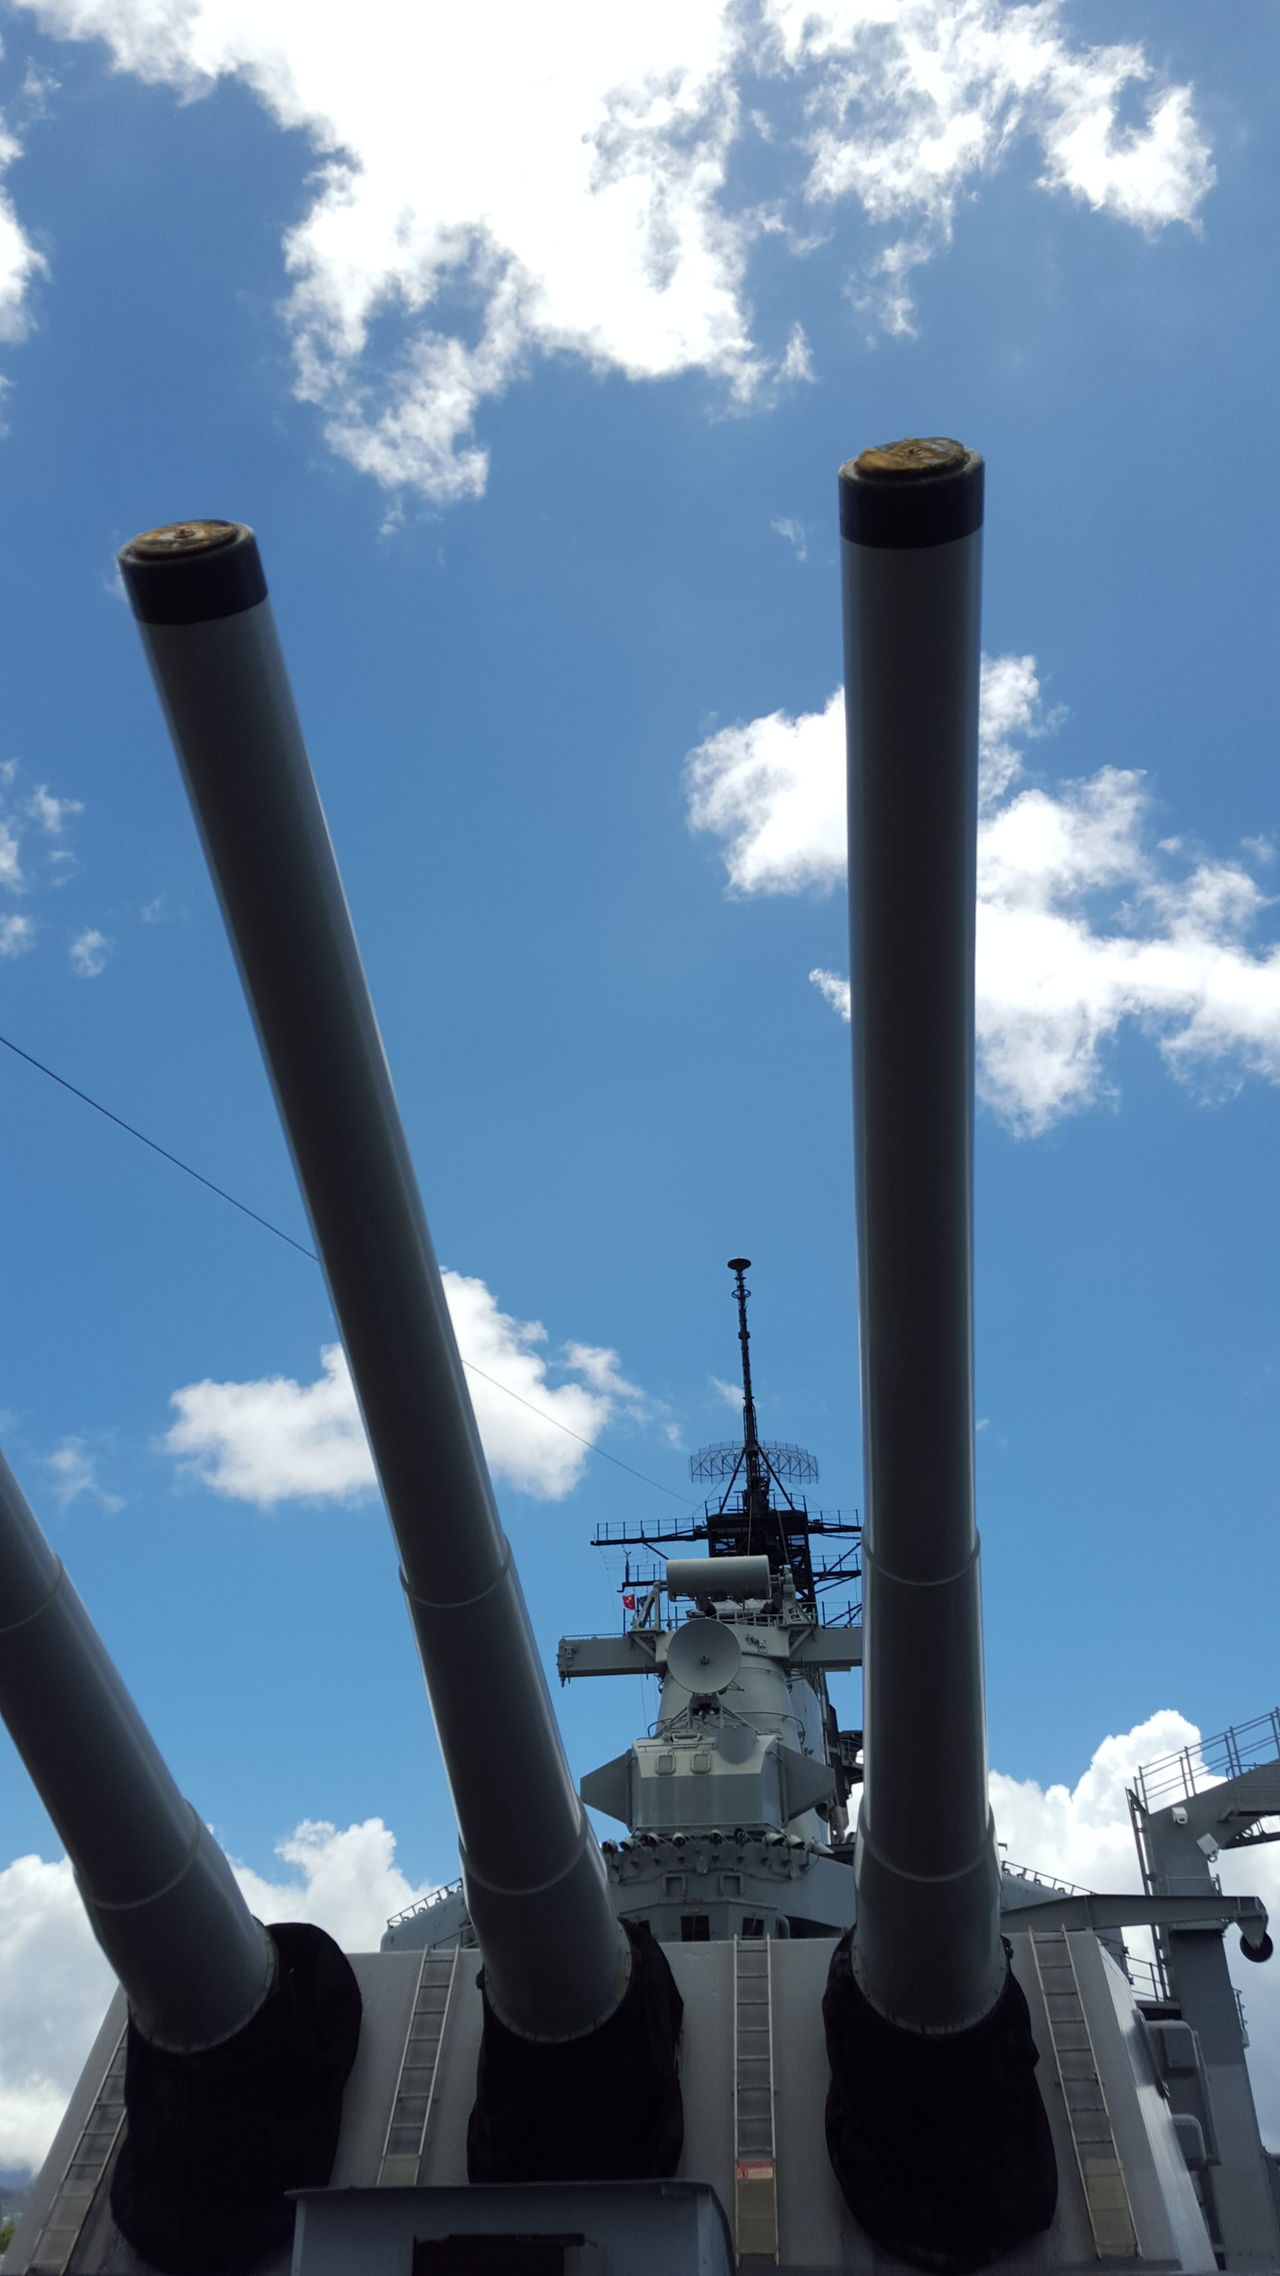 Cloud - Sky Day Hawii Industry No People Outdoors Pipe - Tube Sky Uss Arizona Weapon